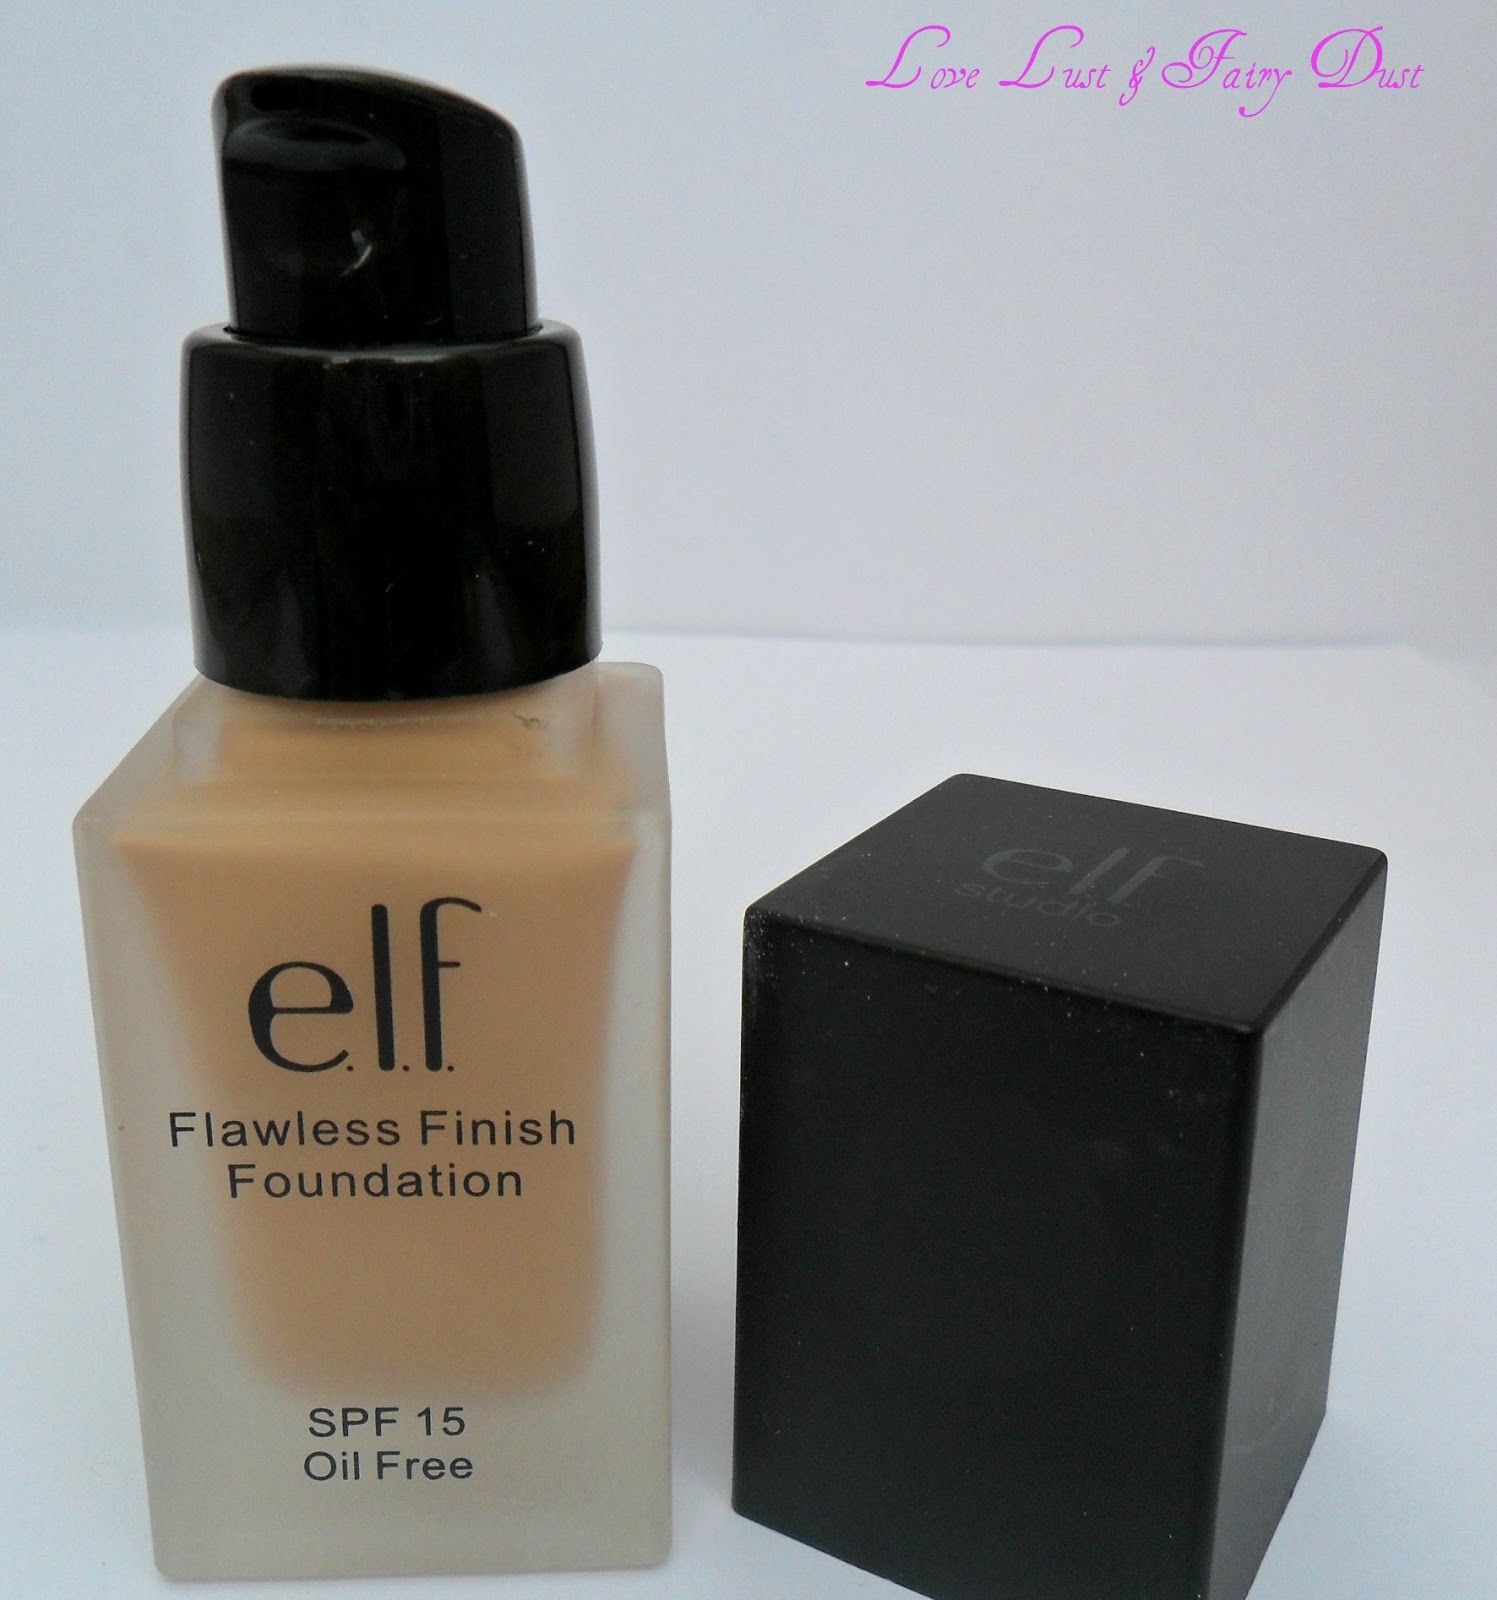 e.l.f Studio Flawless Finish Foundation